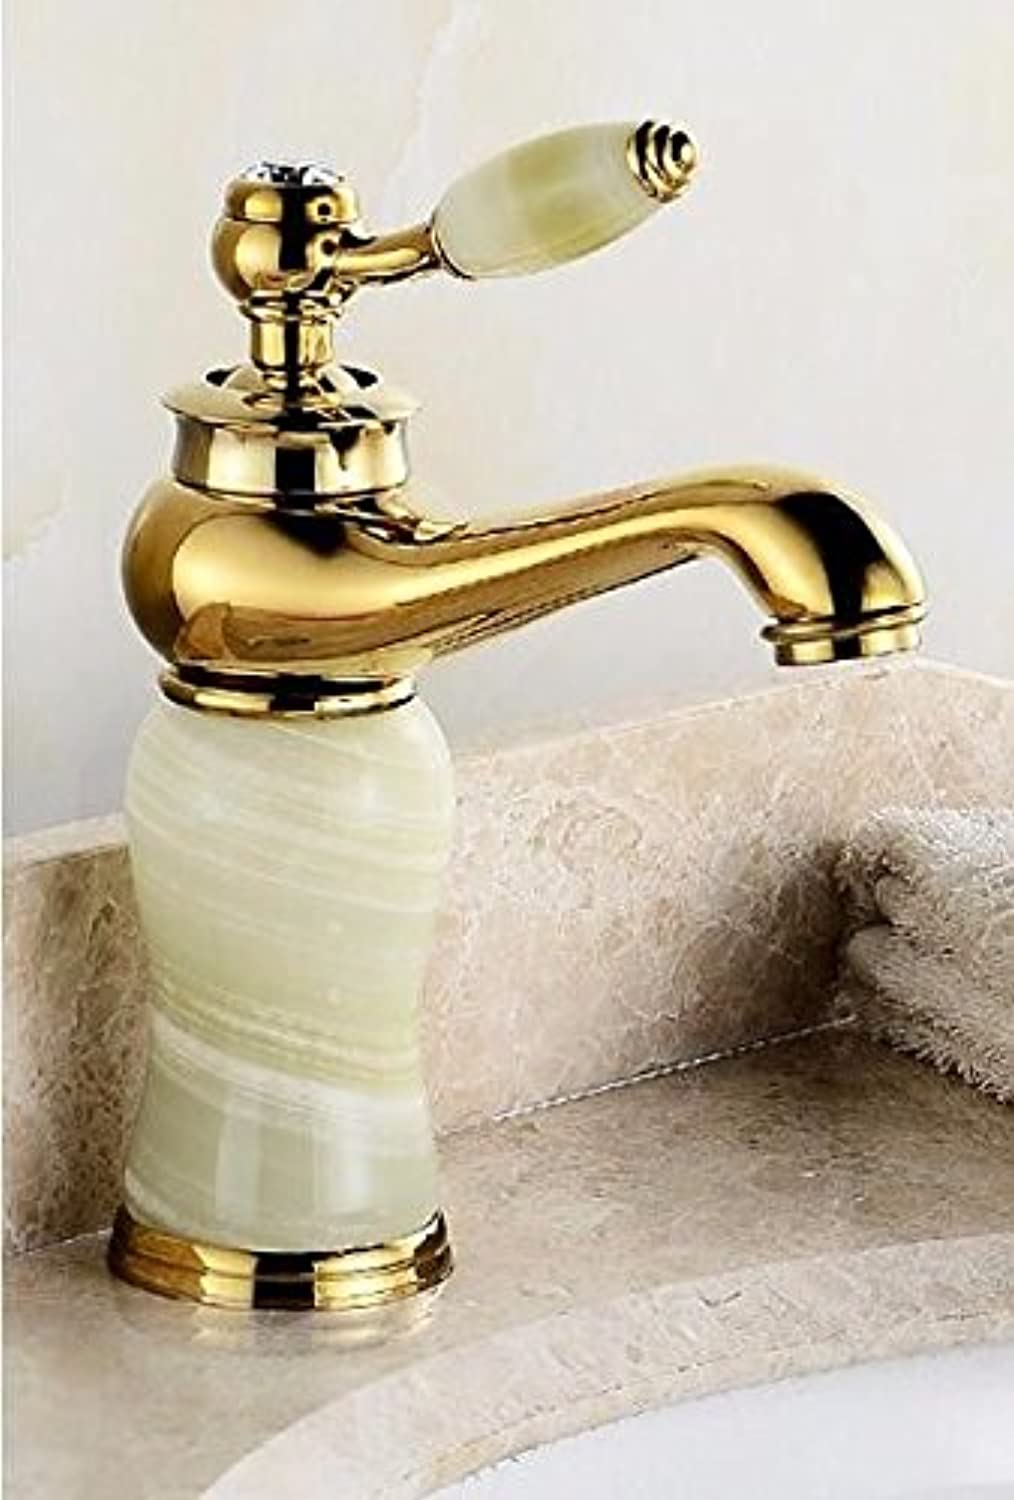 Hlluya Professional Sink Mixer Tap Kitchen Faucet The copper basin faucet hot and cold wash basin mixer lowered basin marble green jade gold faucet,K